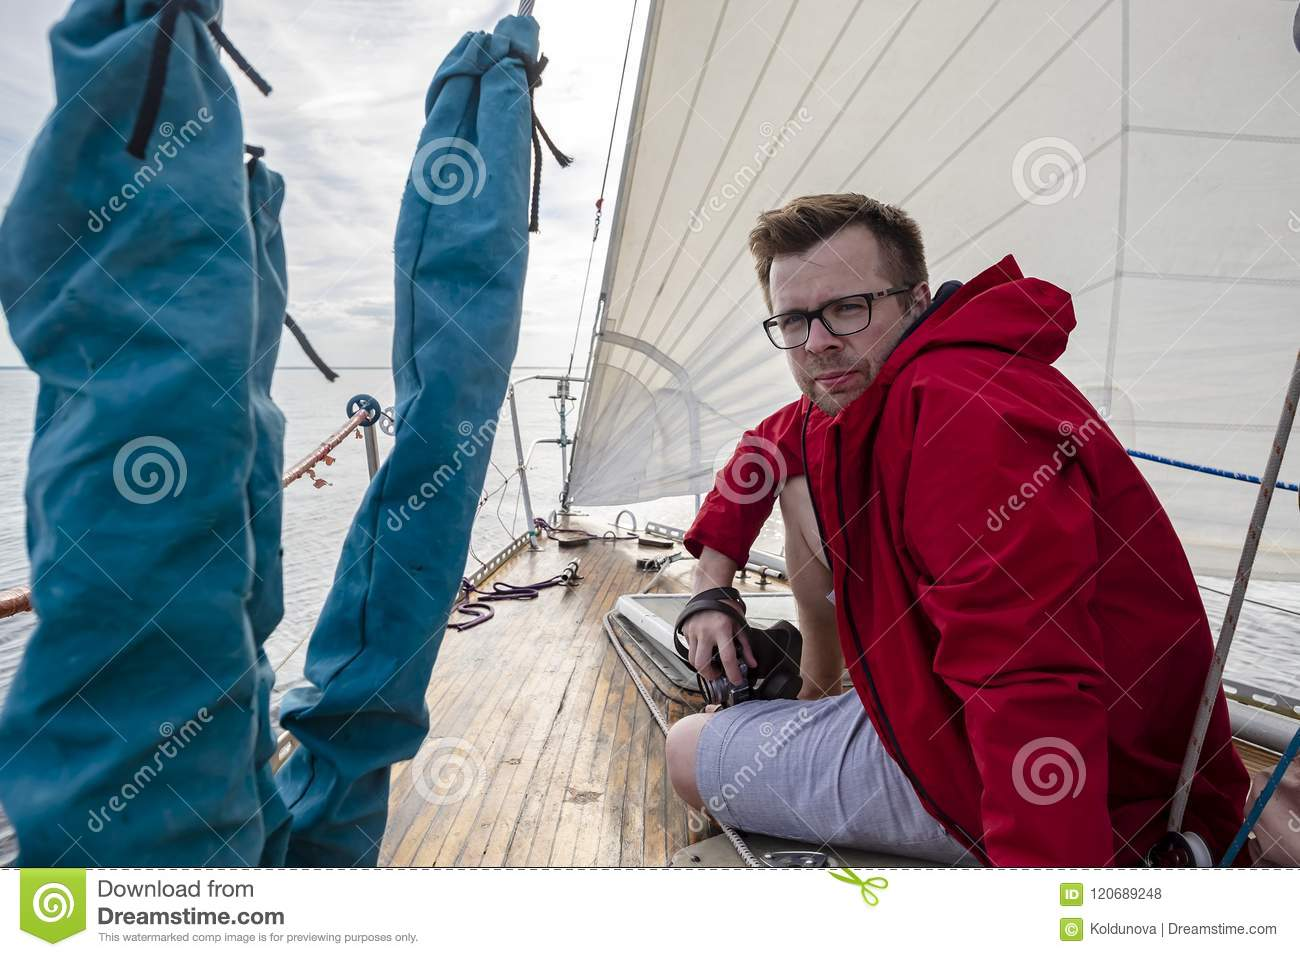 A Man - A Photographer In A Red Jacket And Glasses Sits On The D